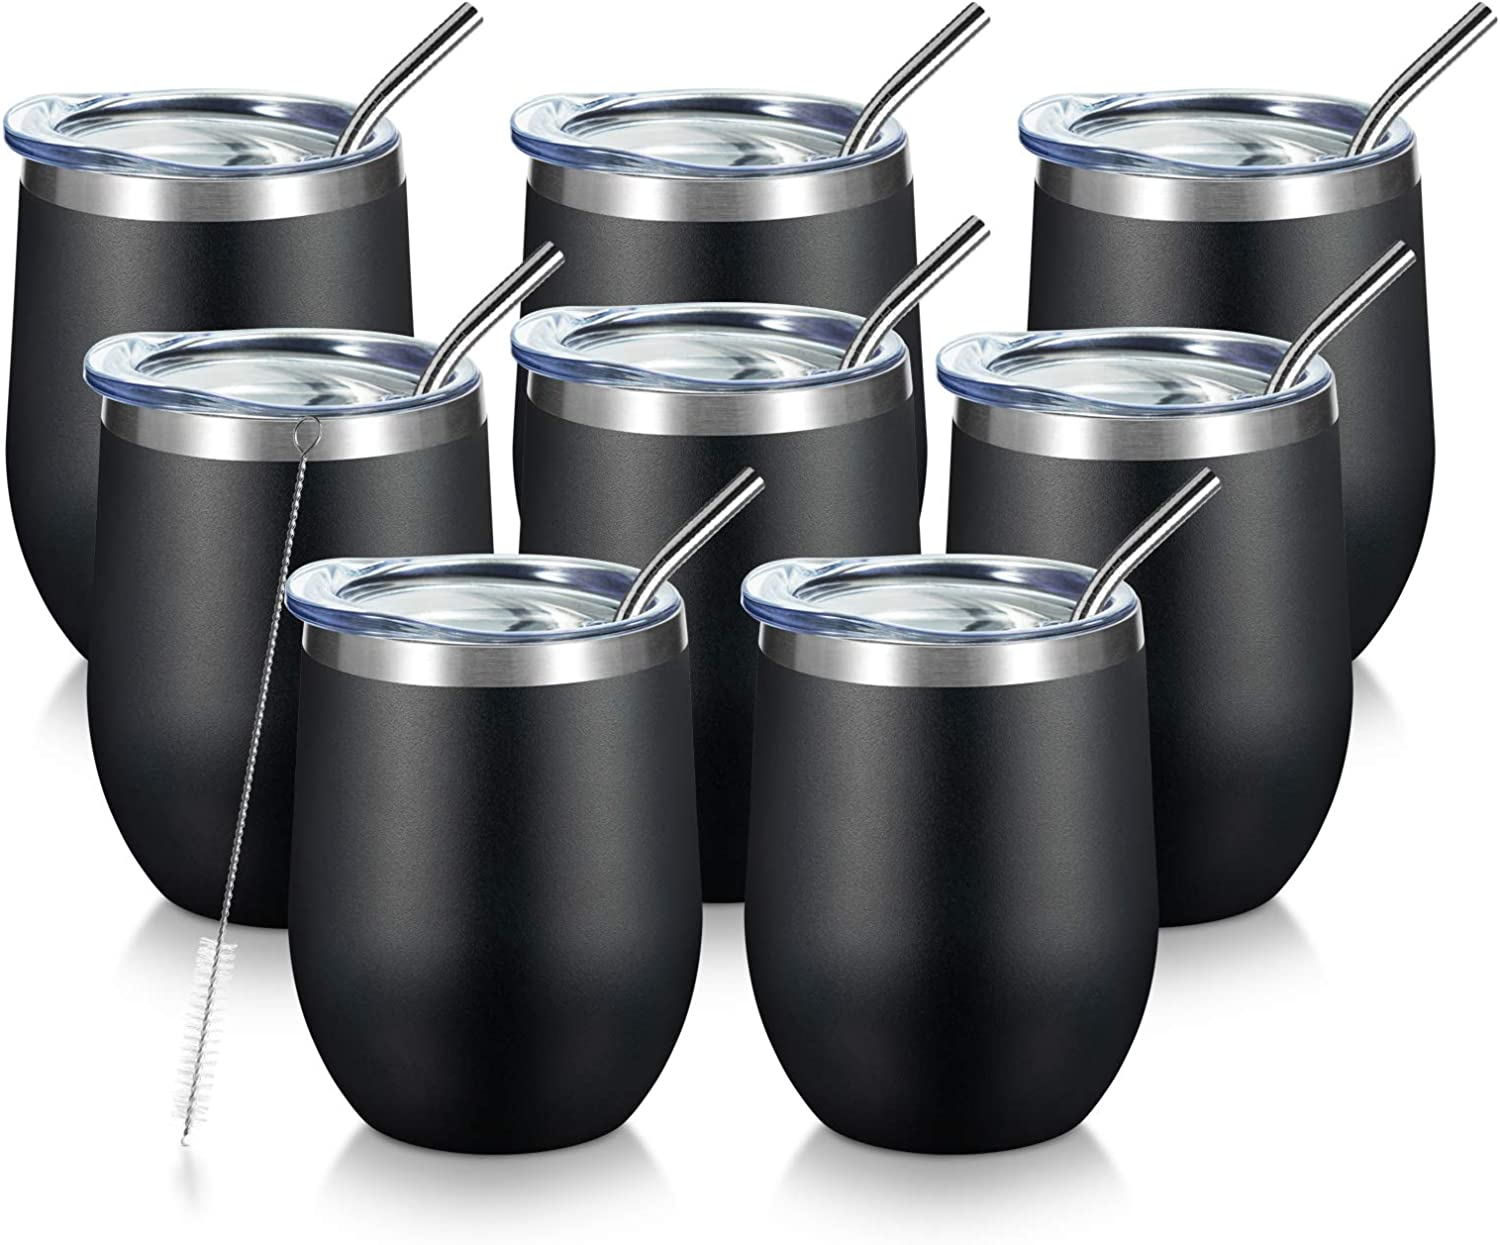 COMOOO 8 pack Stainless Steel Wine Tumbler with Lid and Straw 12OZ-Double Wall Vacuum Insulated Travel Tumbler Cup for Coffee Wine Cocktails Ice Cream Cup With Lid (Black, 8)